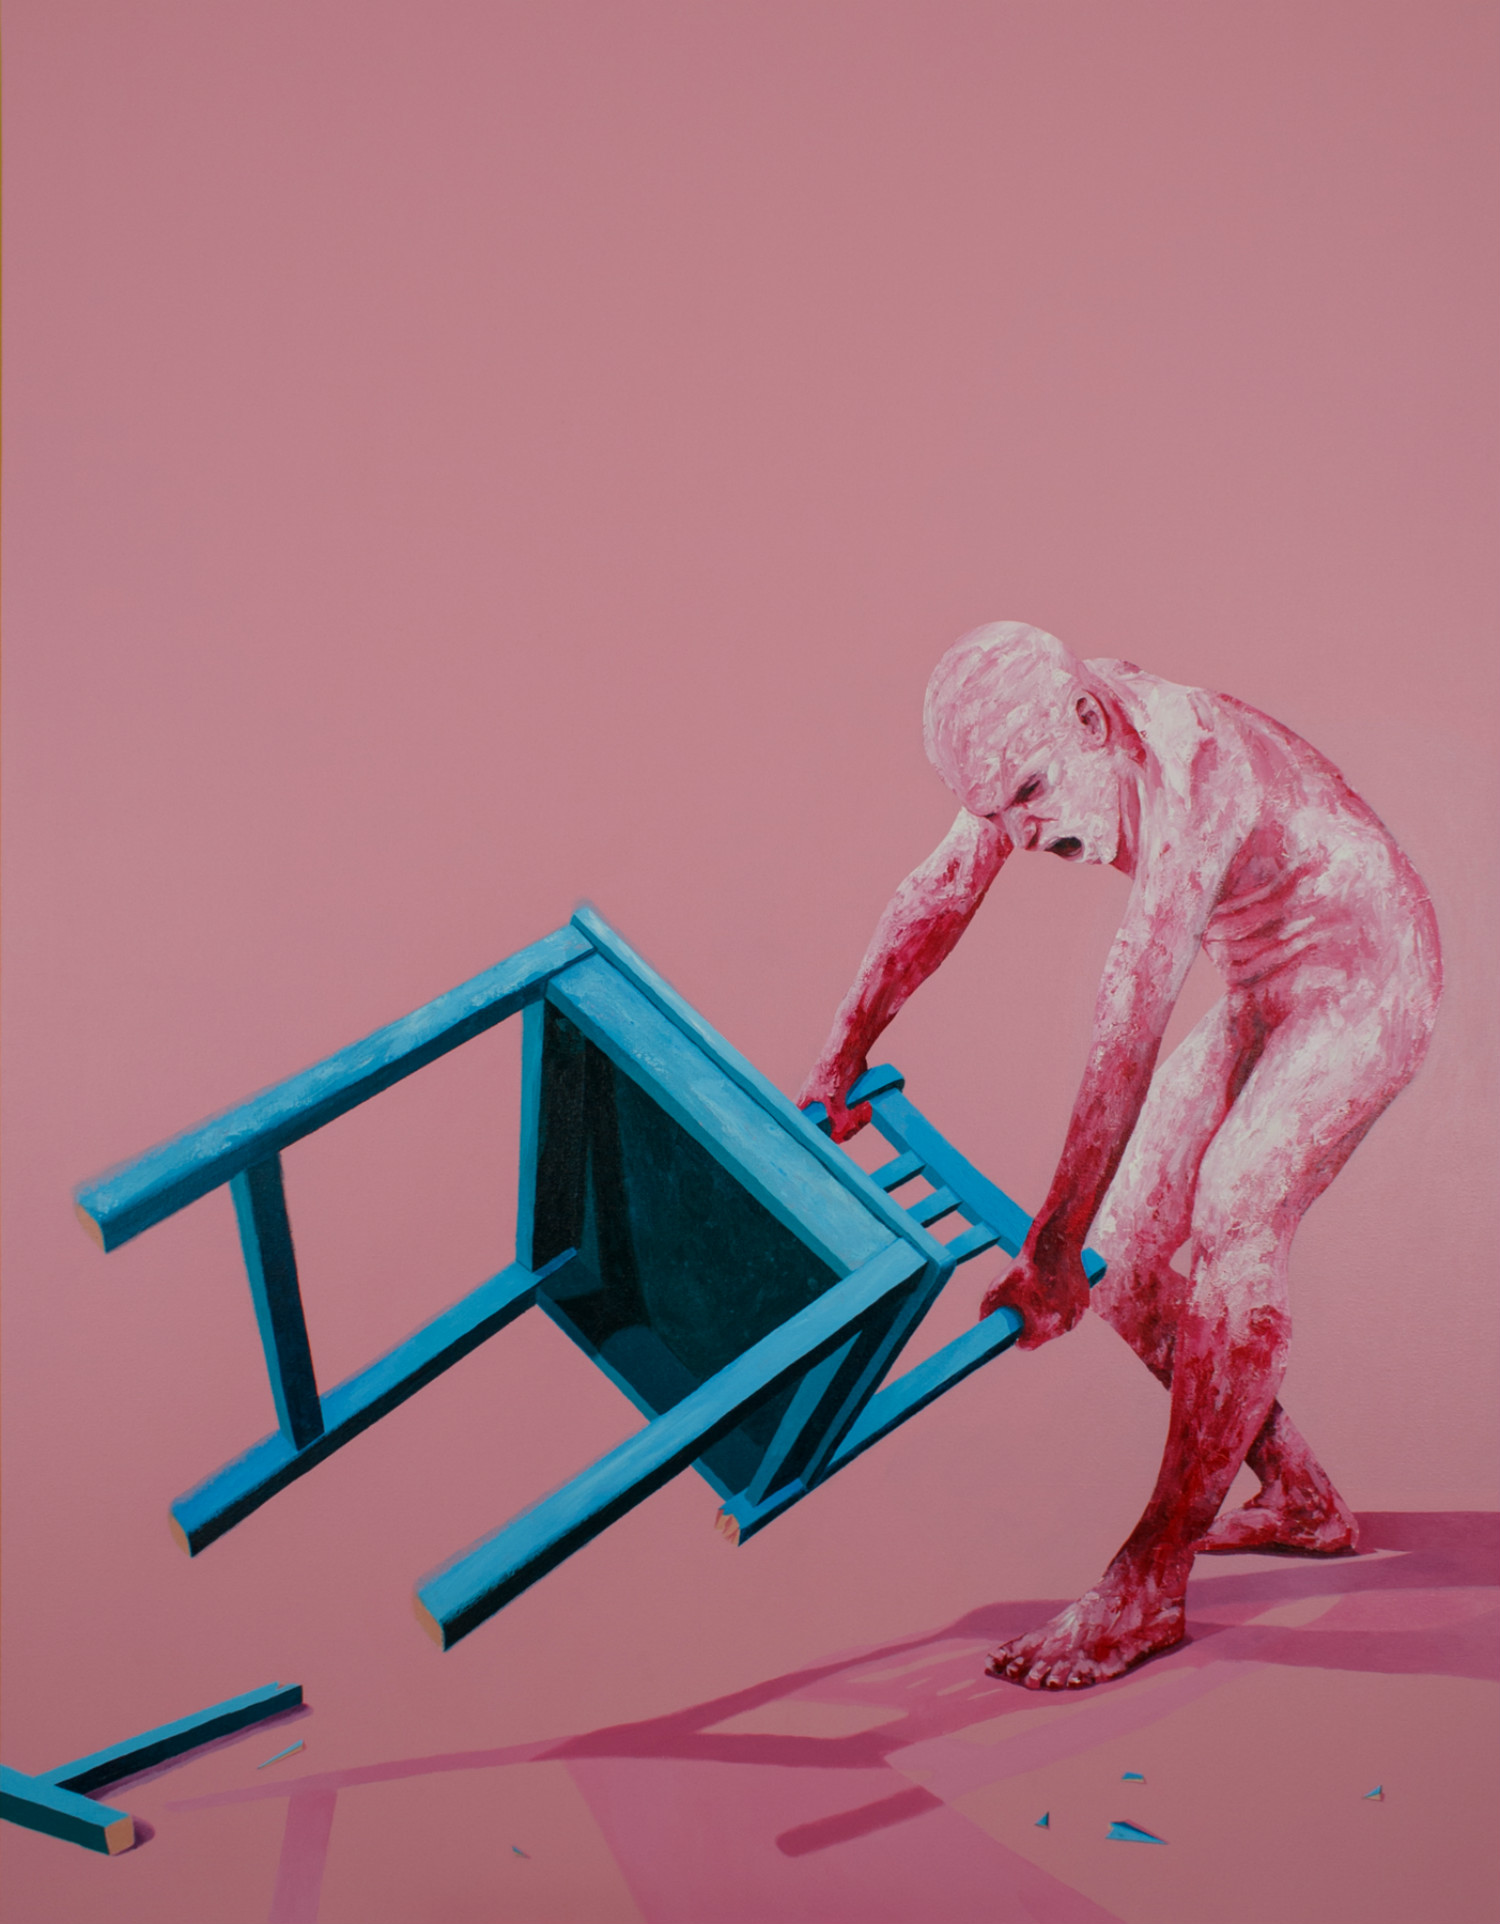 oscar delmar illustration colour surreal portraits pink chair